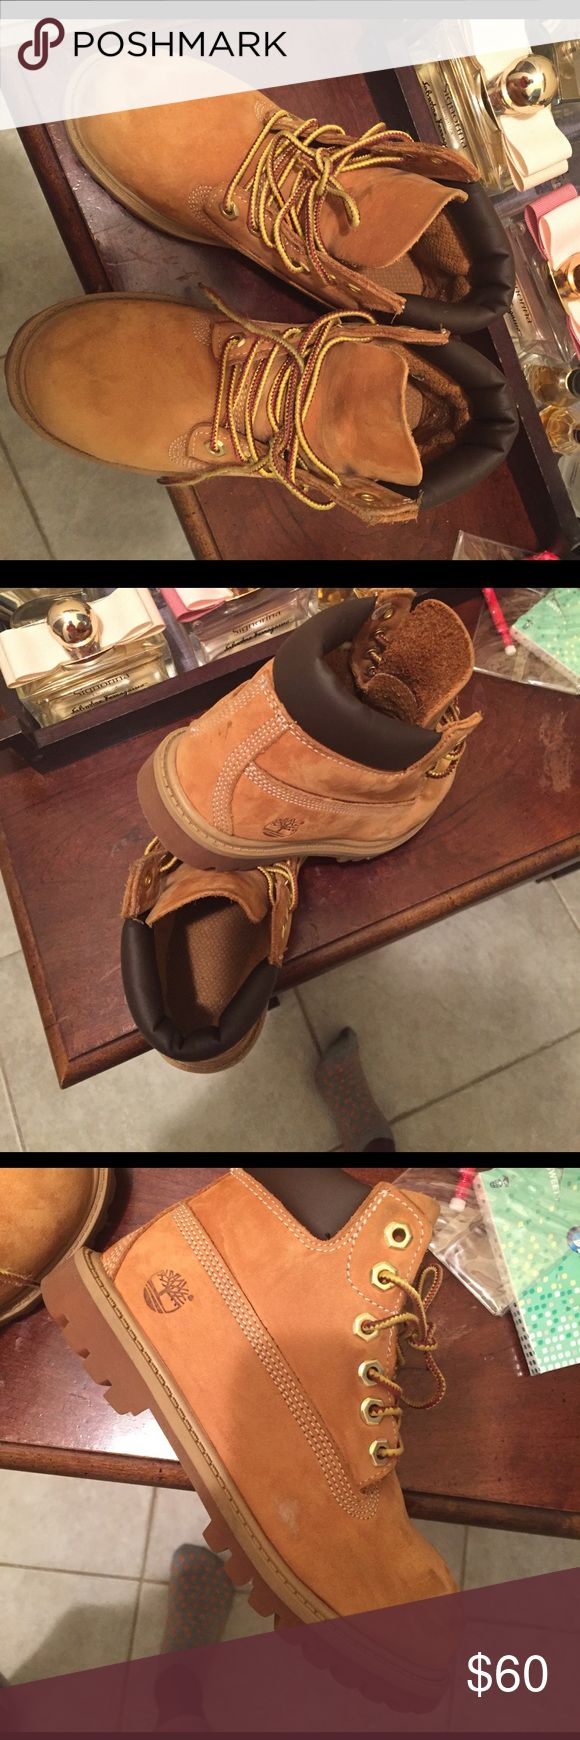 Kids timberland boots Slightly used tab timberland size (12) Shoes Boots